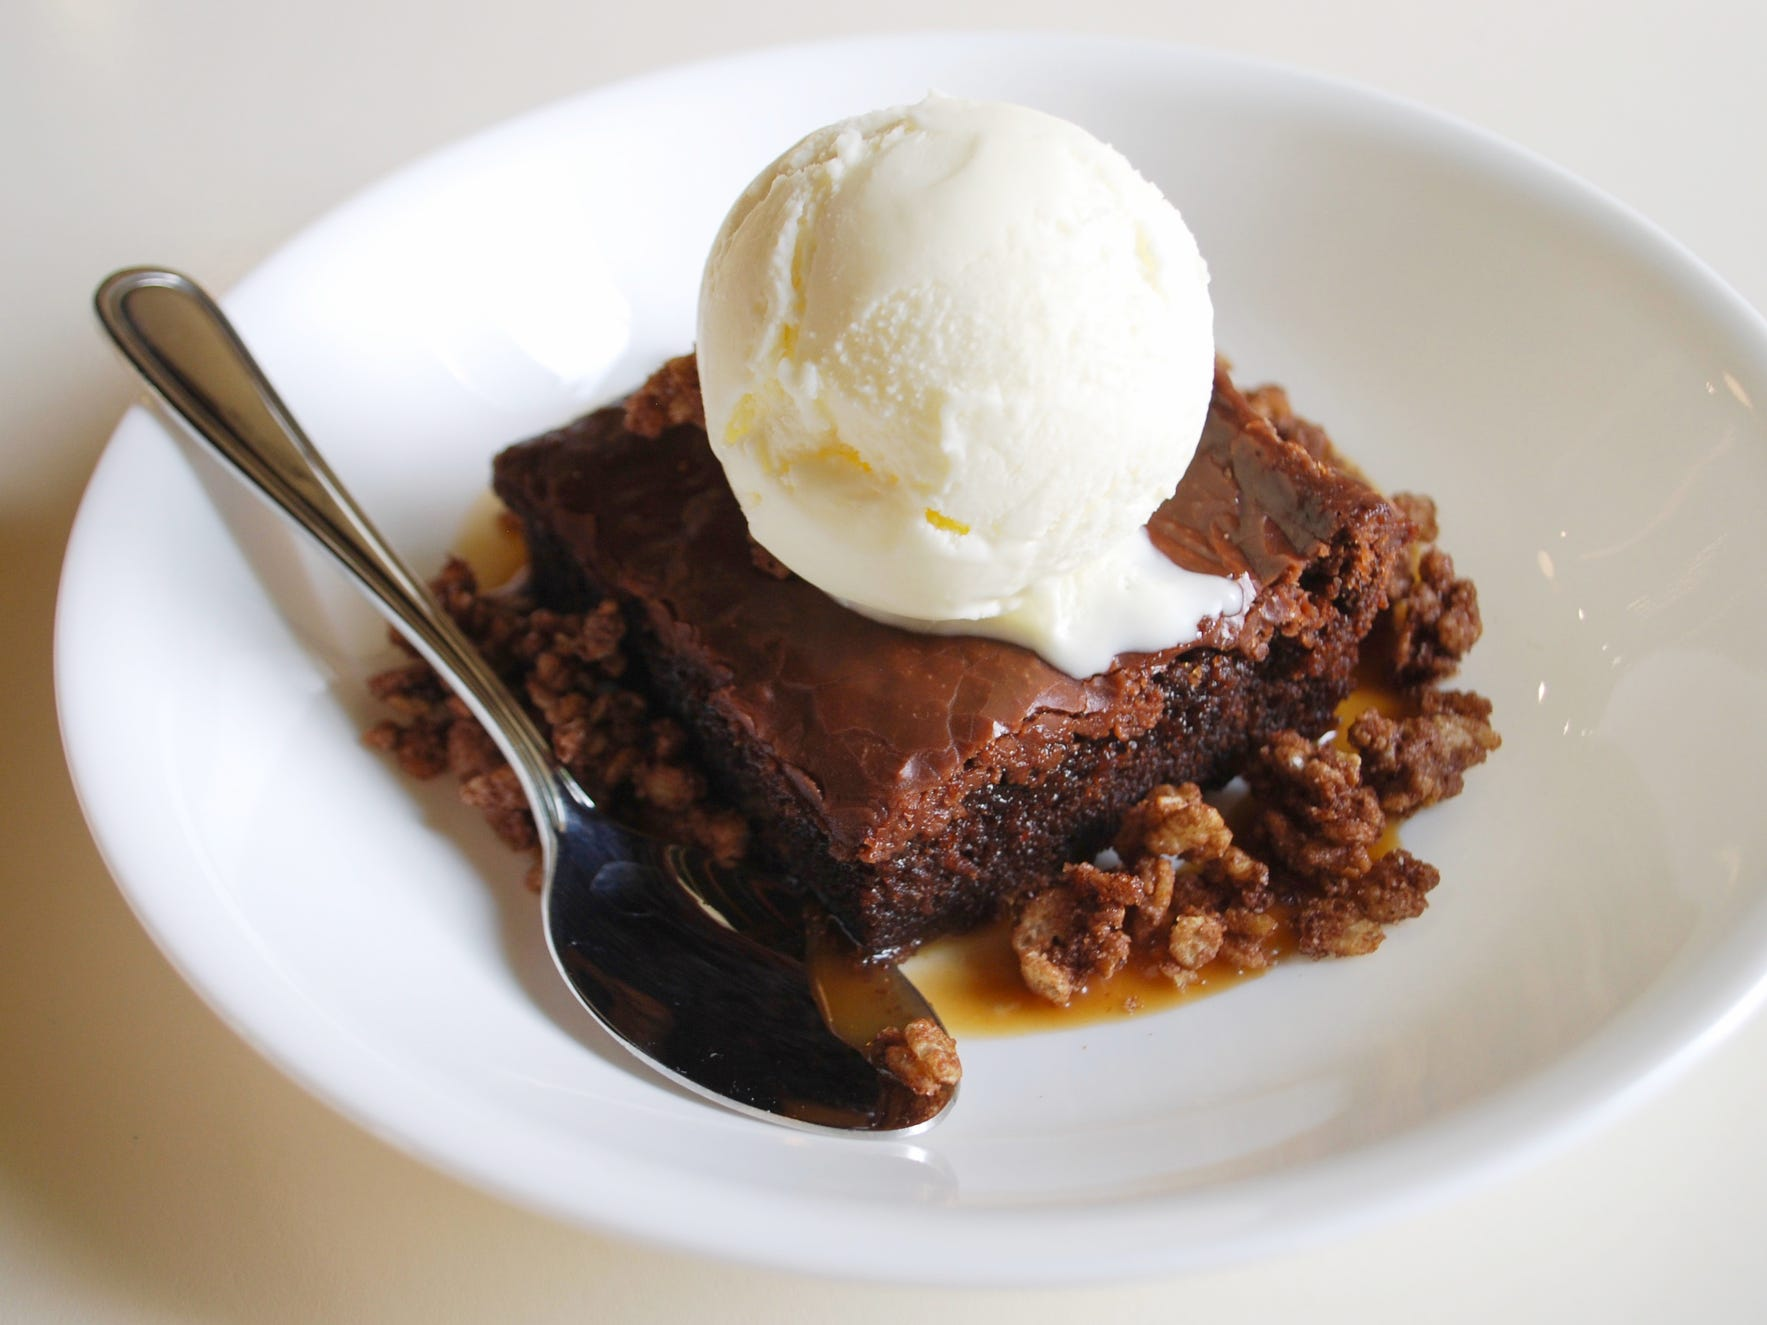 Chocolate Slab Cake with caramel, cocoa crispies and vanilla ice cream at Mop/Broom Mess Hall.